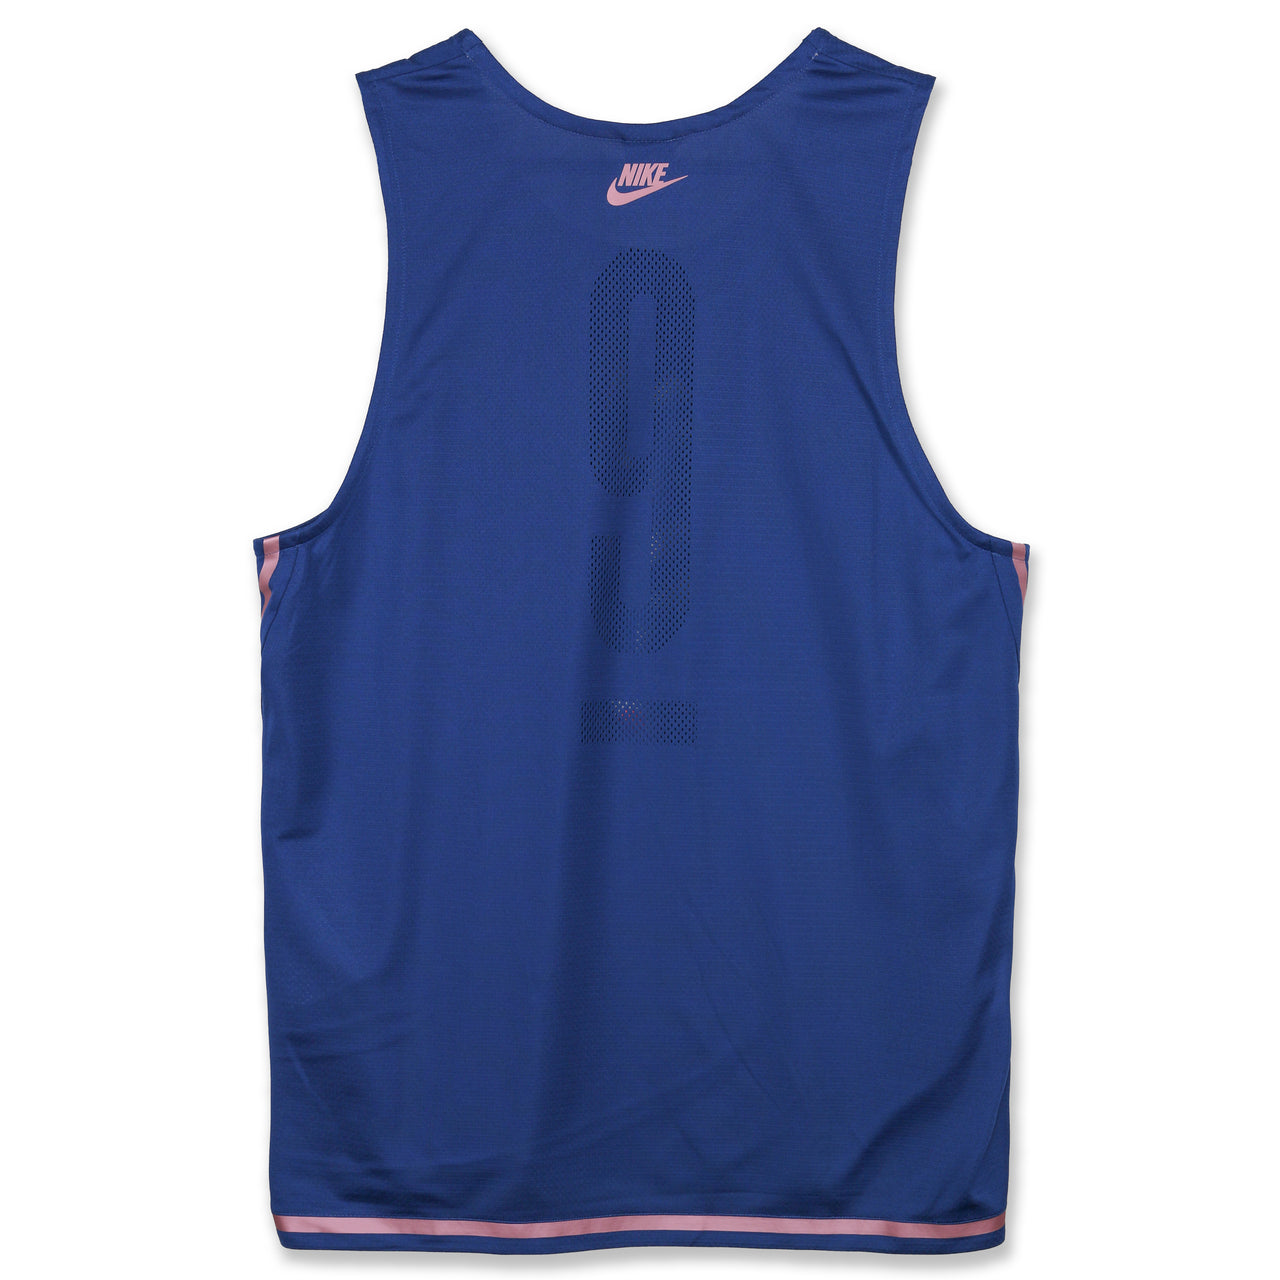 Nike Lab x Pigalle Jersey